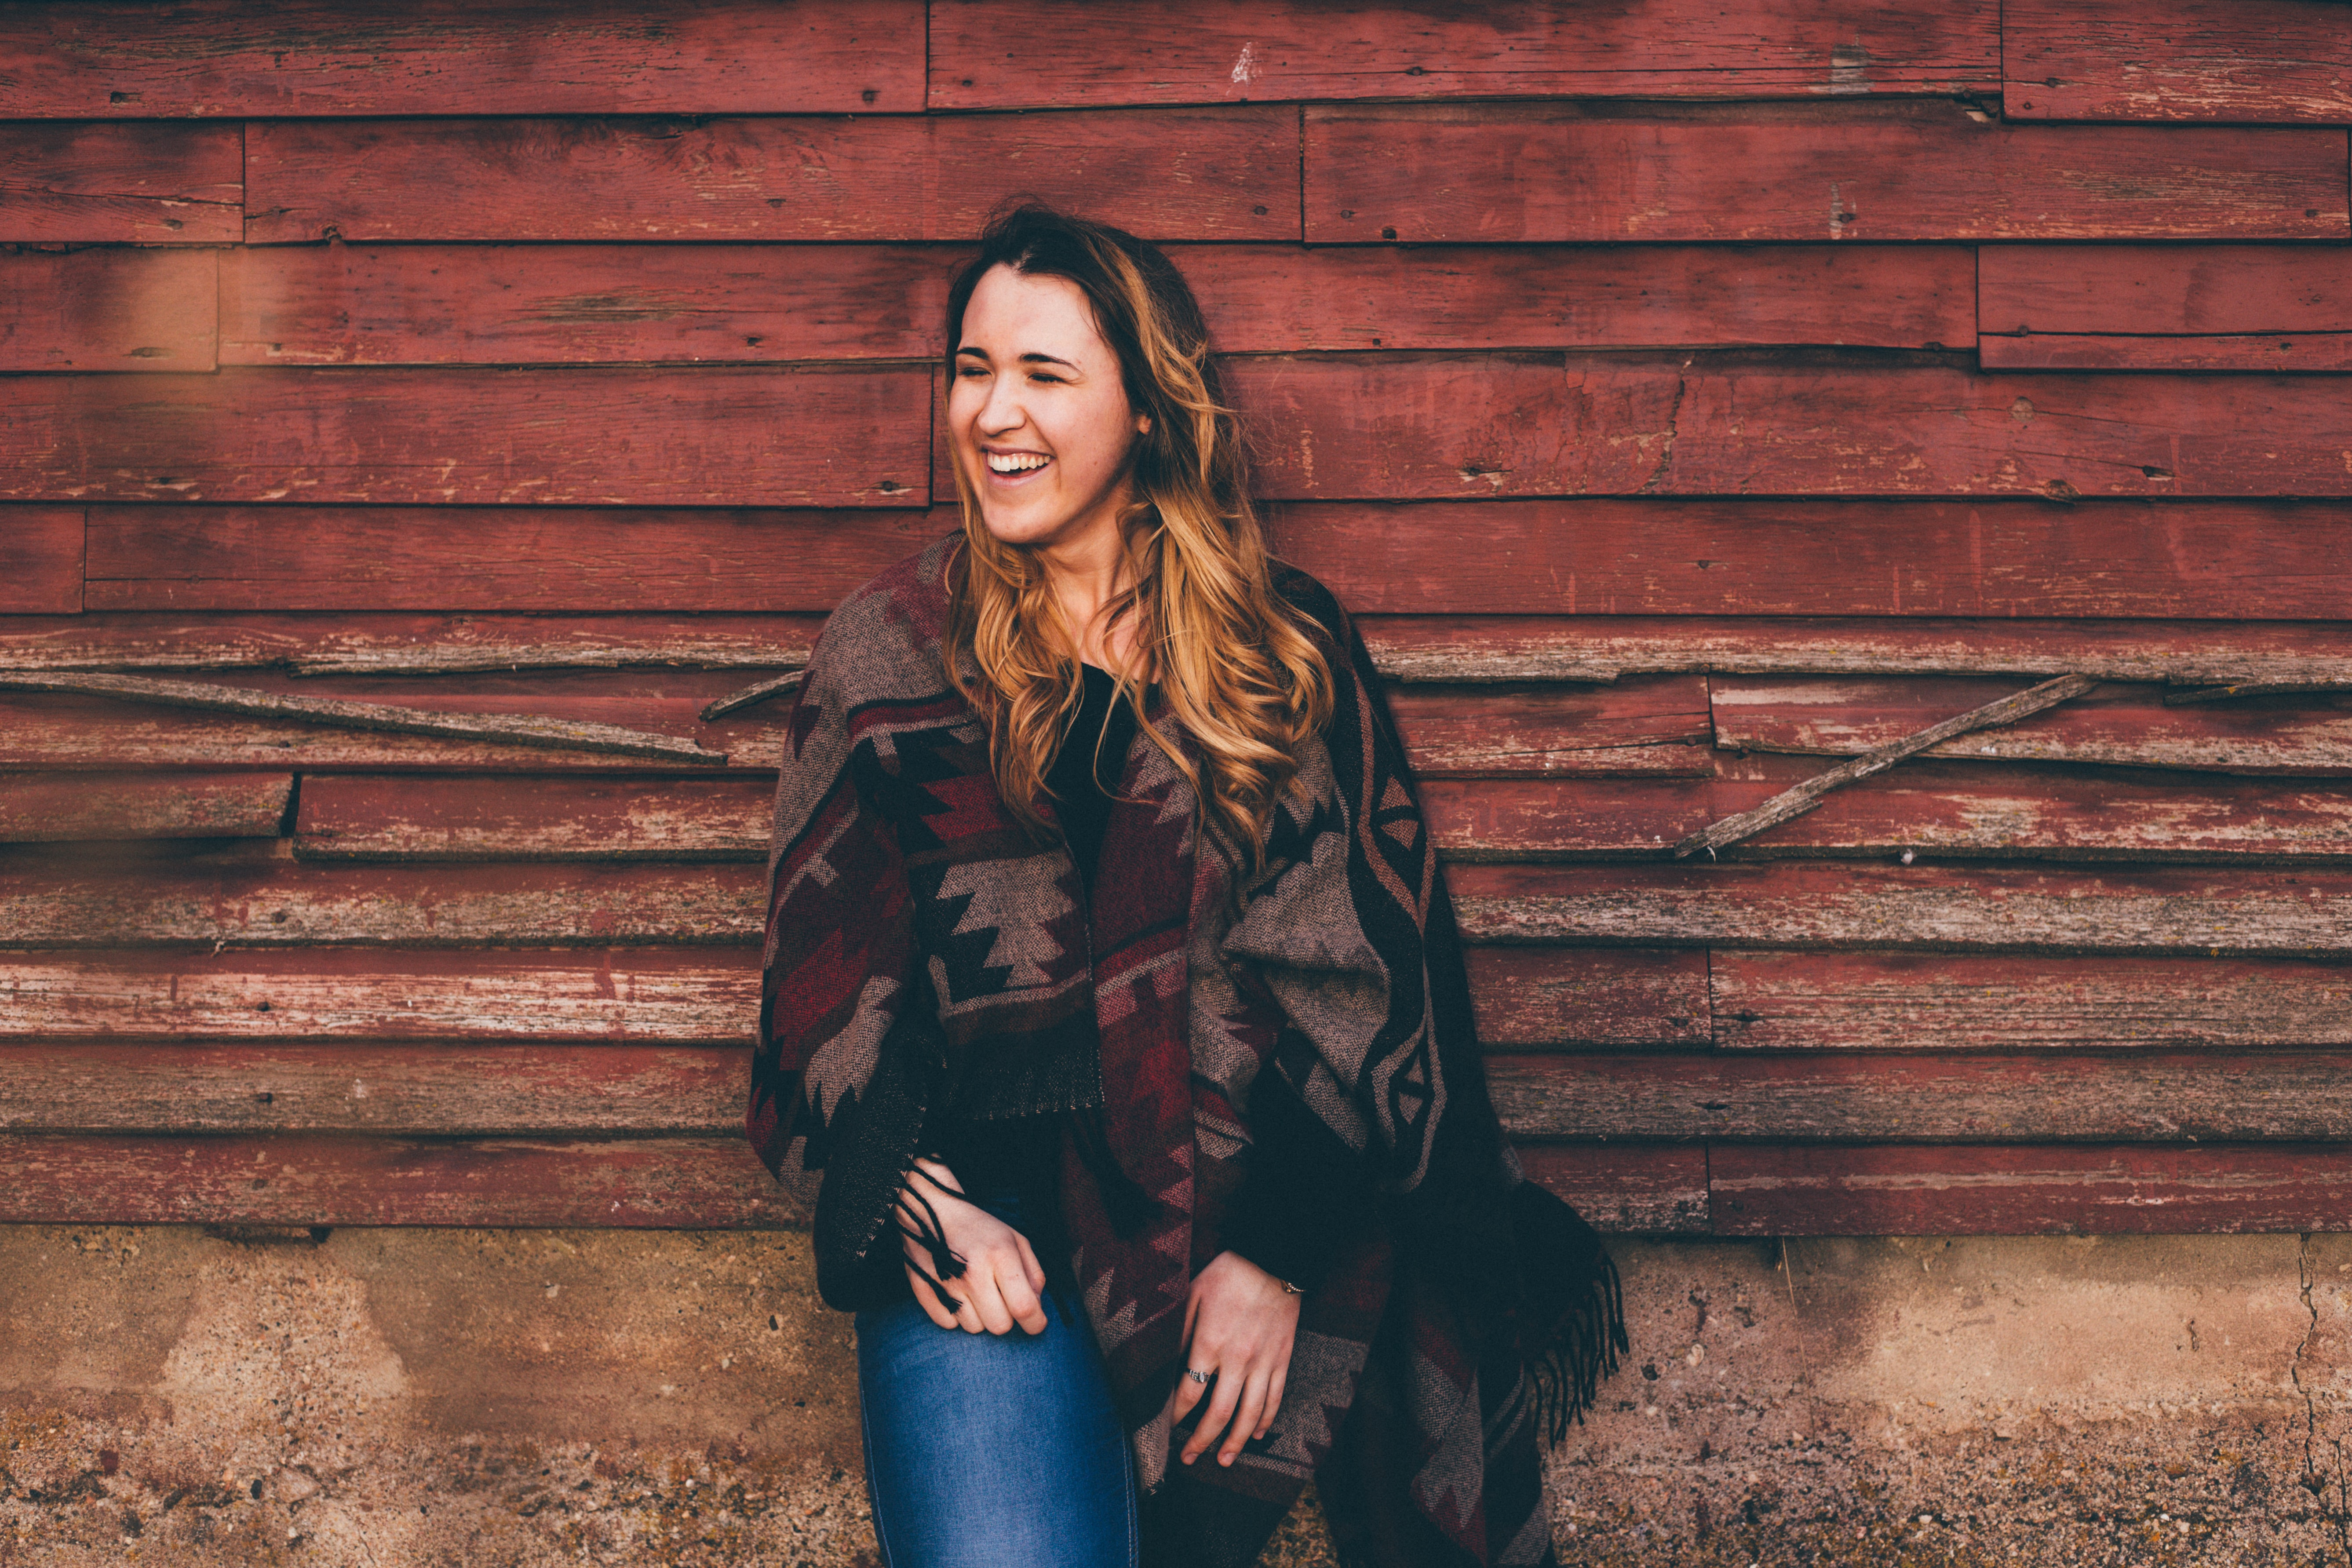 A happy woman standing against a red wall.